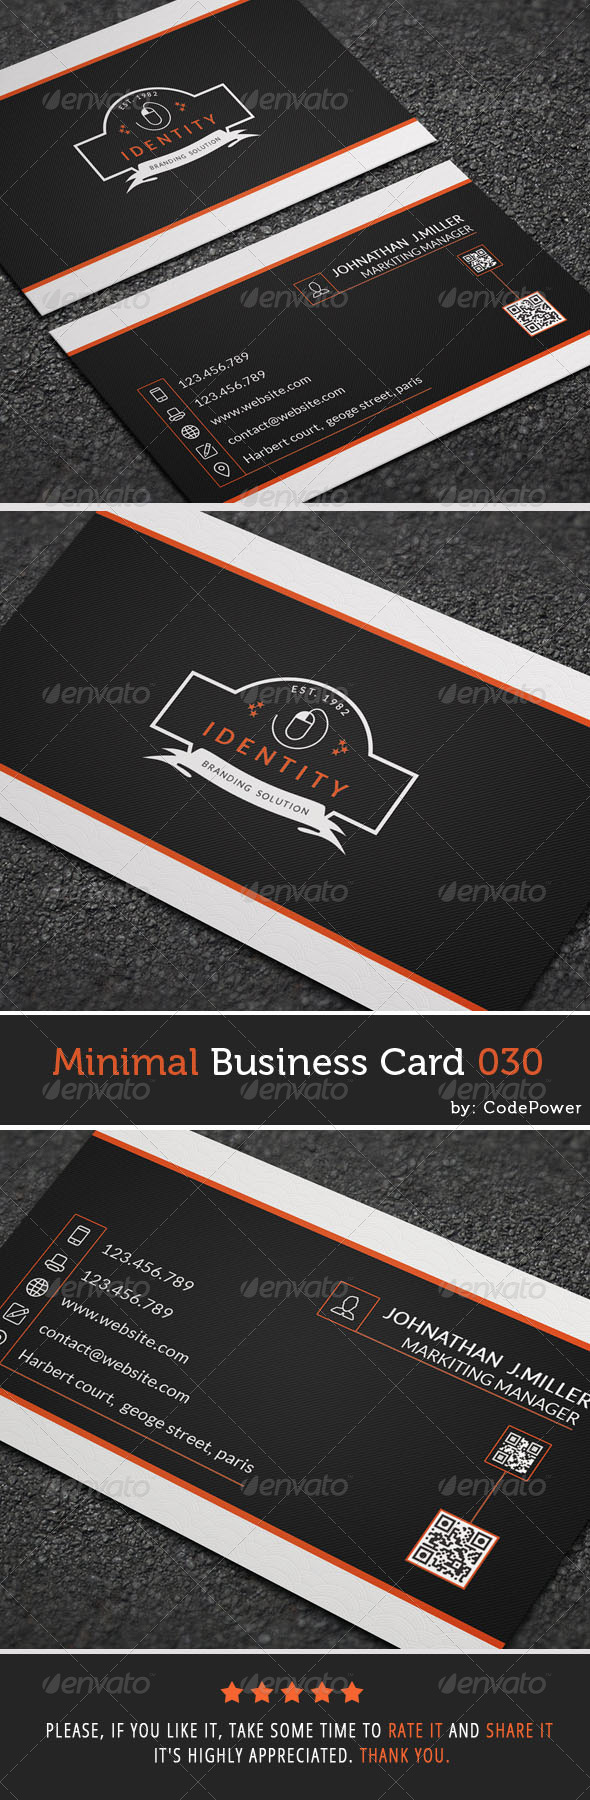 GraphicRiver Minimal Business Card 030 7929736